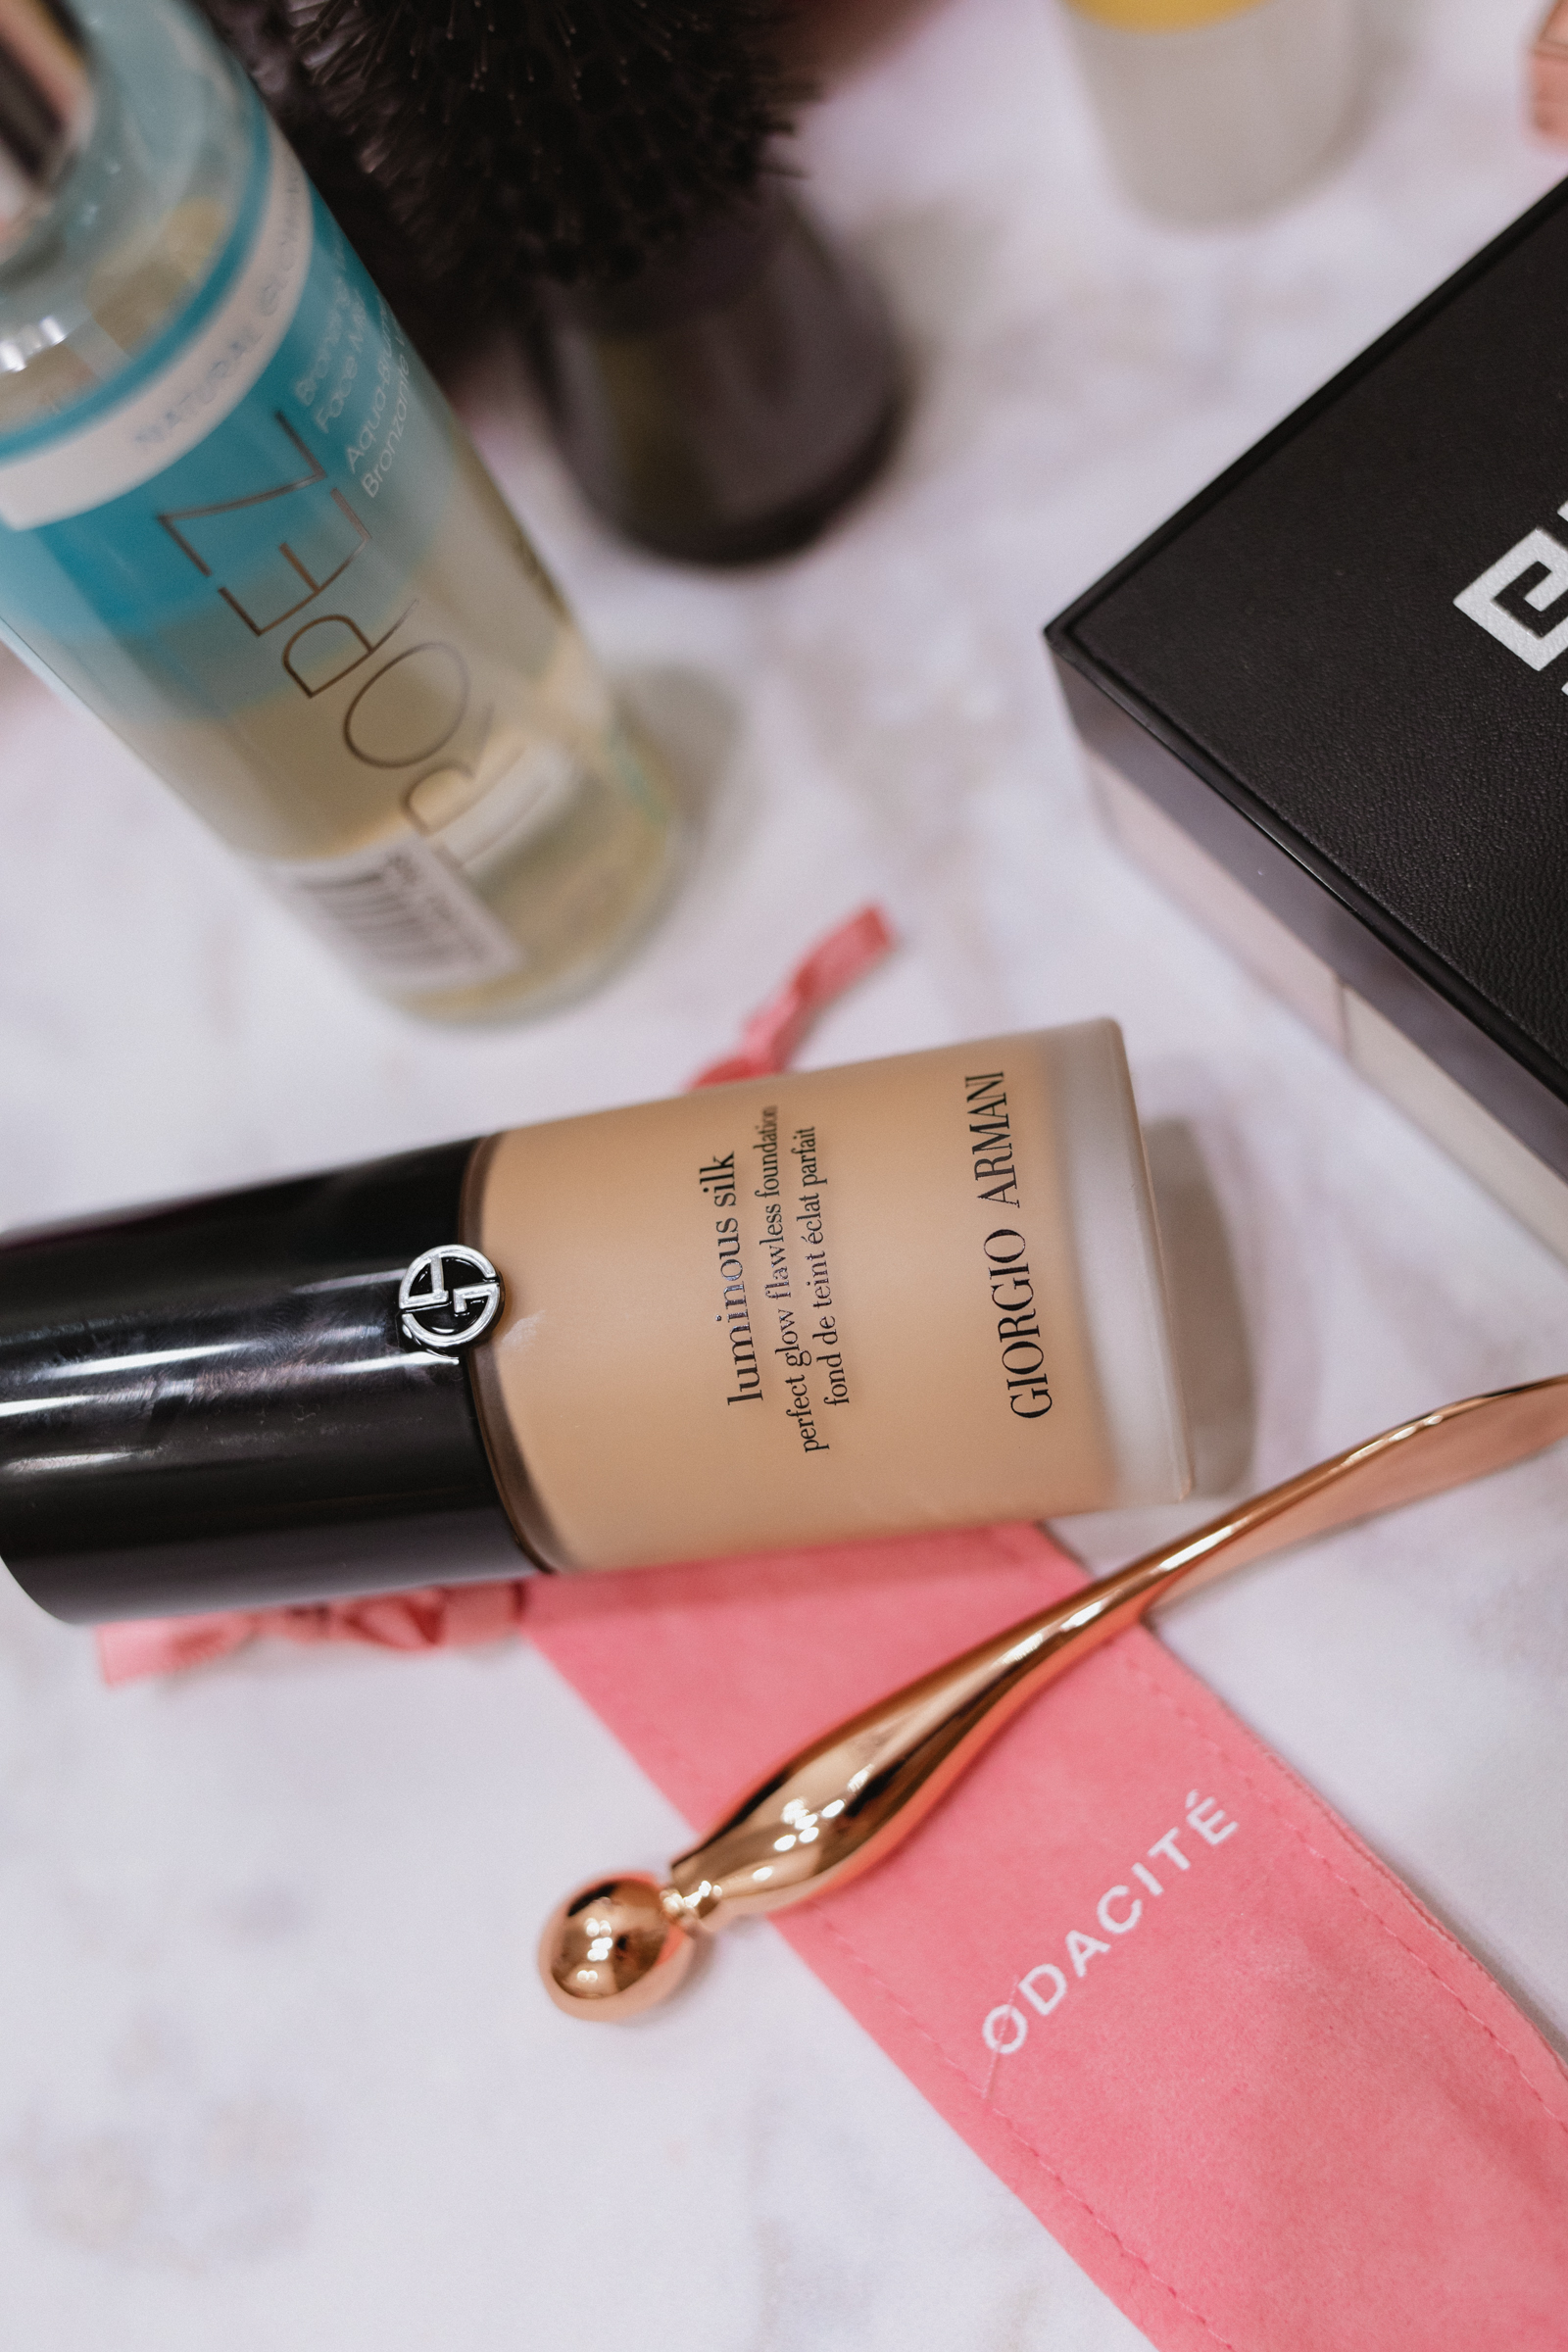 Elly Brown shares her favorite Summer beauty products from Nordstrom including the Giorgio Armani Luminous Silk foundation